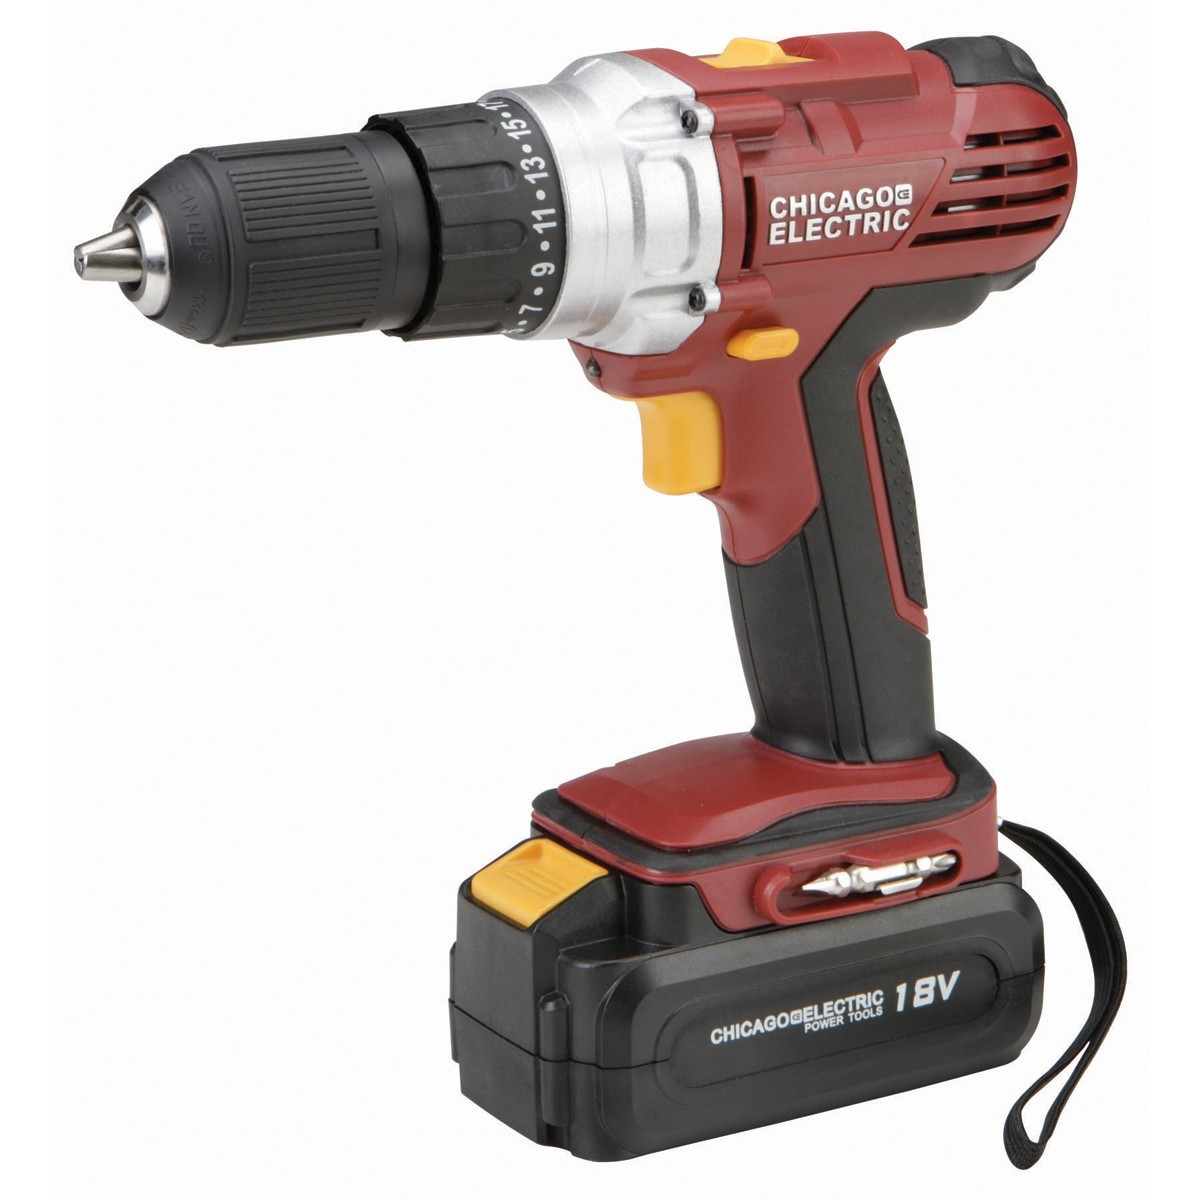 CHICAGO ELECTRIC Cordless Drill 68850